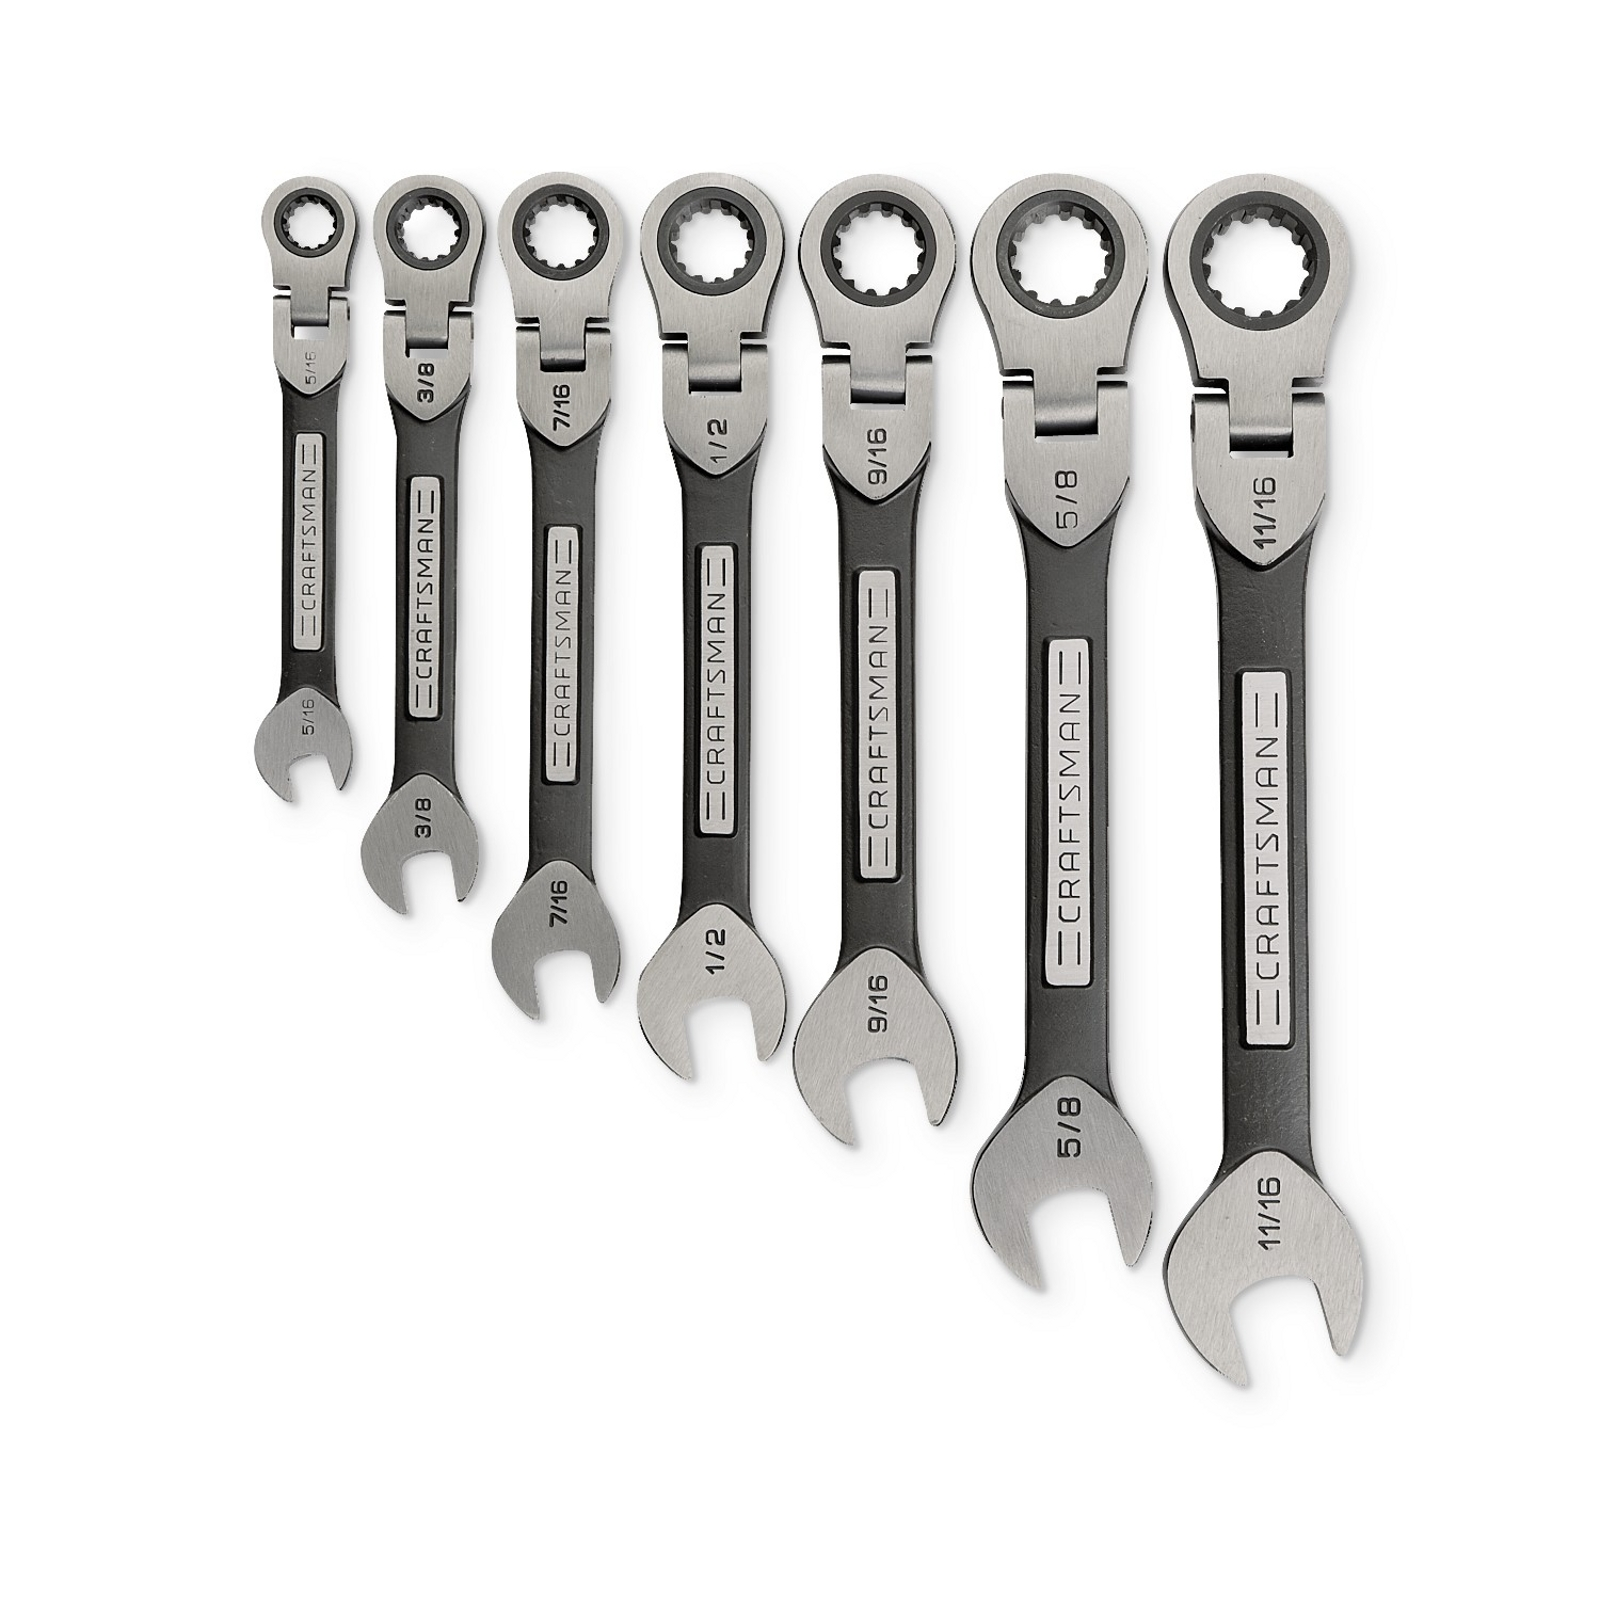 Craftsman 7PC Universal Flex Ratcheting Wrench Set, SAE